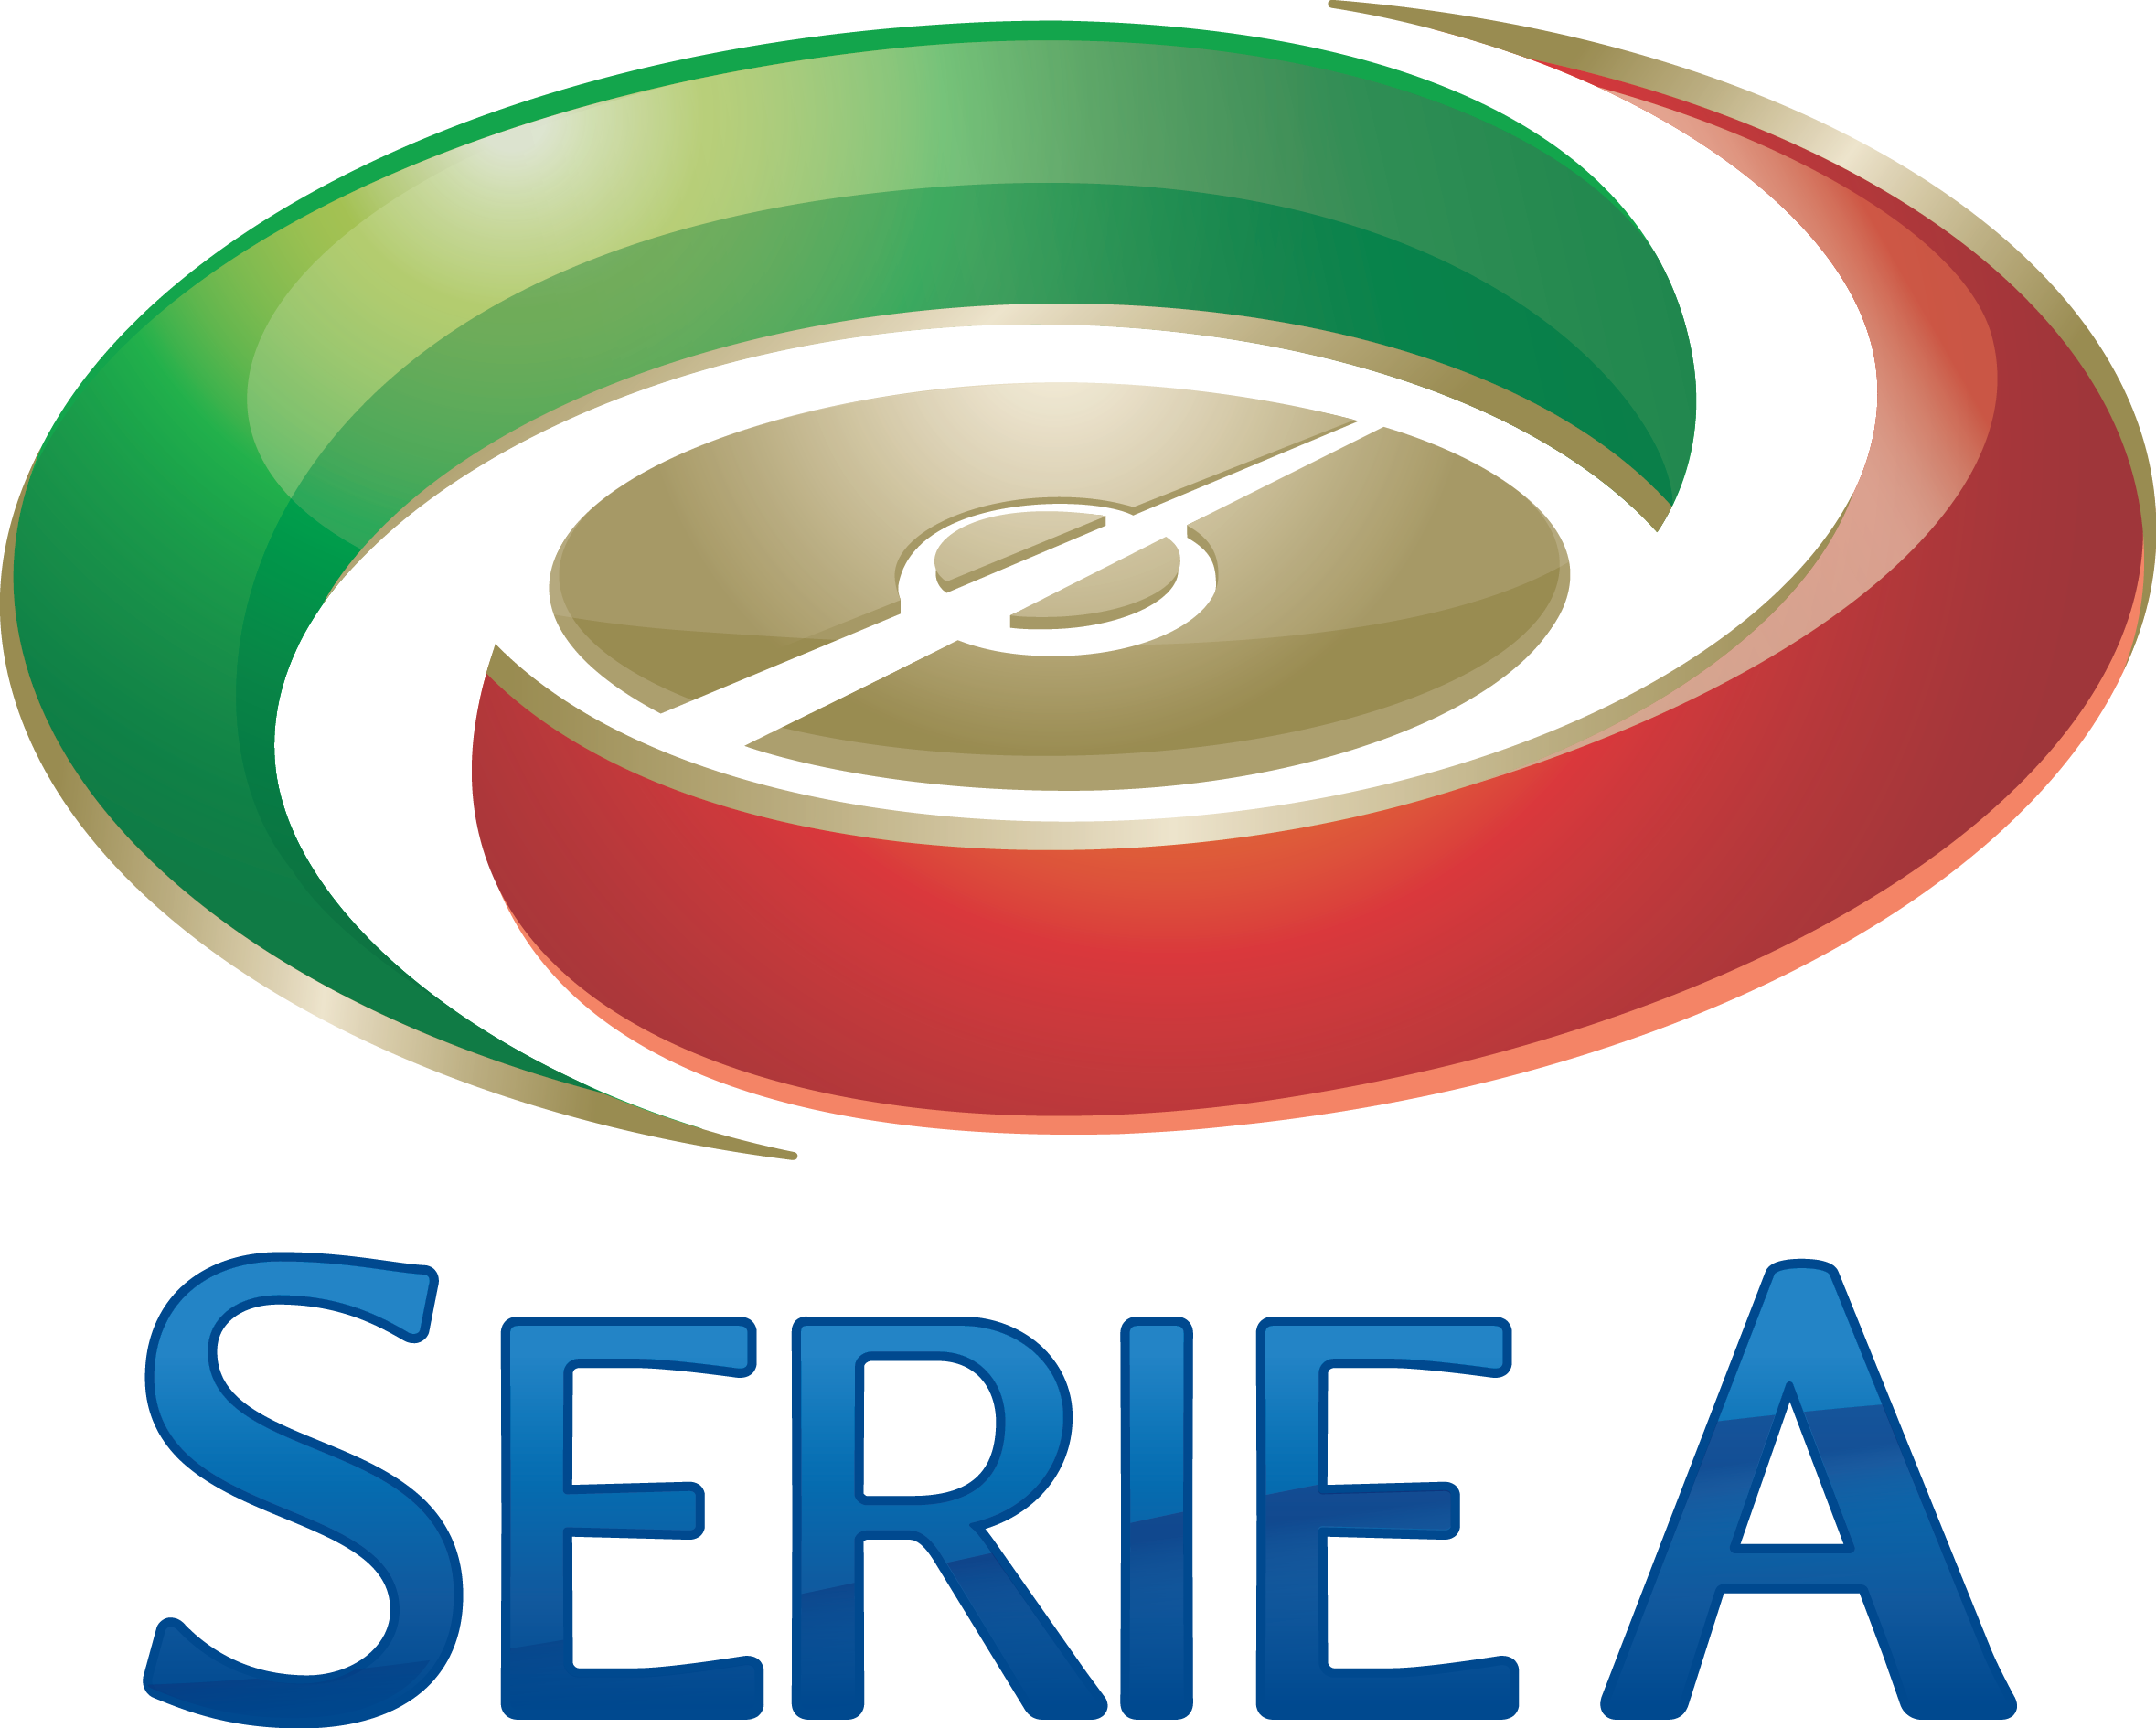 Sassuolo vs Torino 1-1 All goals and highlights 19/04/2015